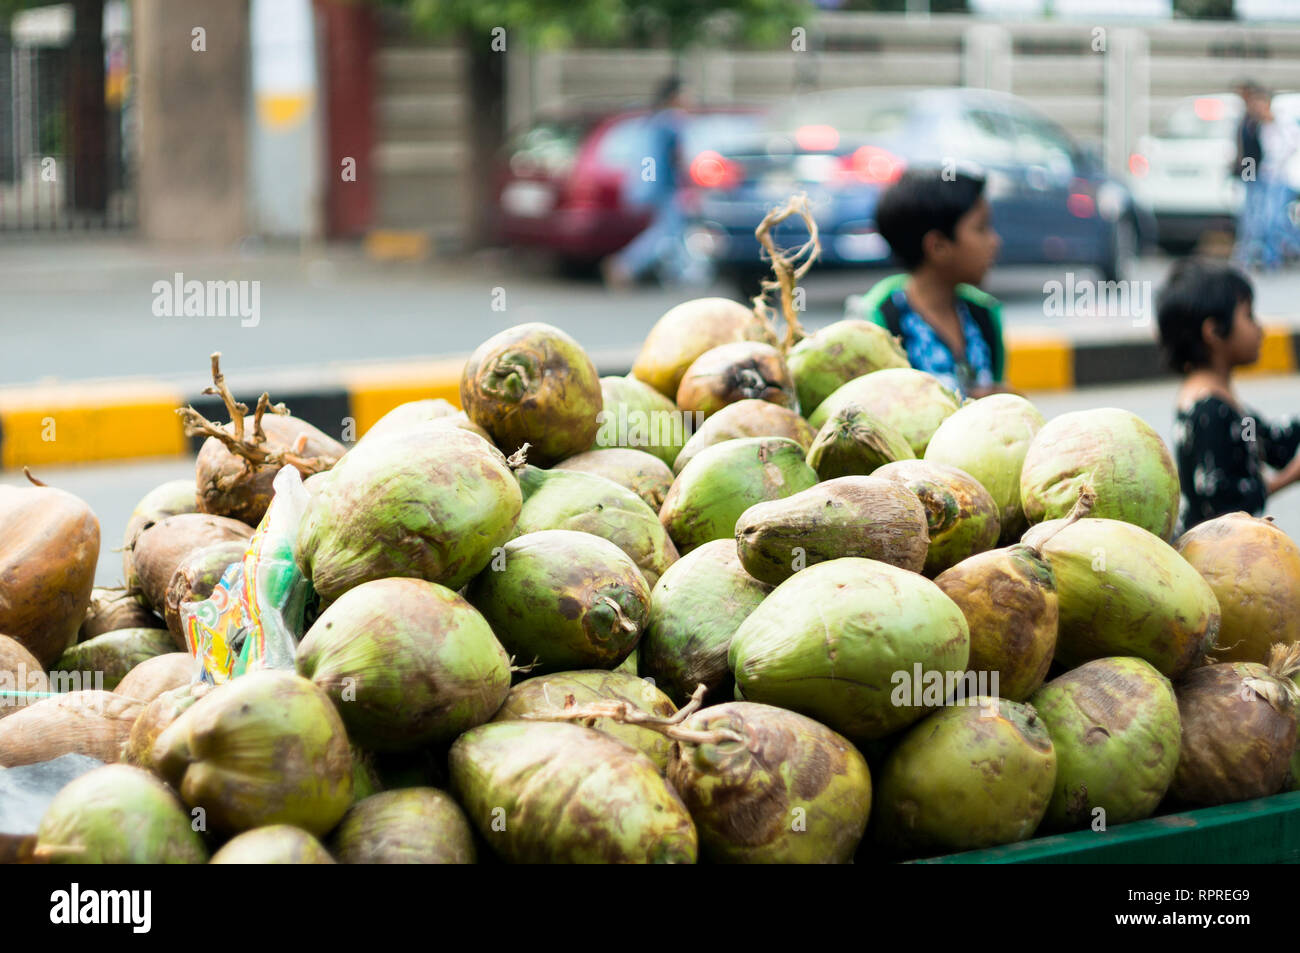 coconut cart on the roadside with children playing in the background - Stock Image